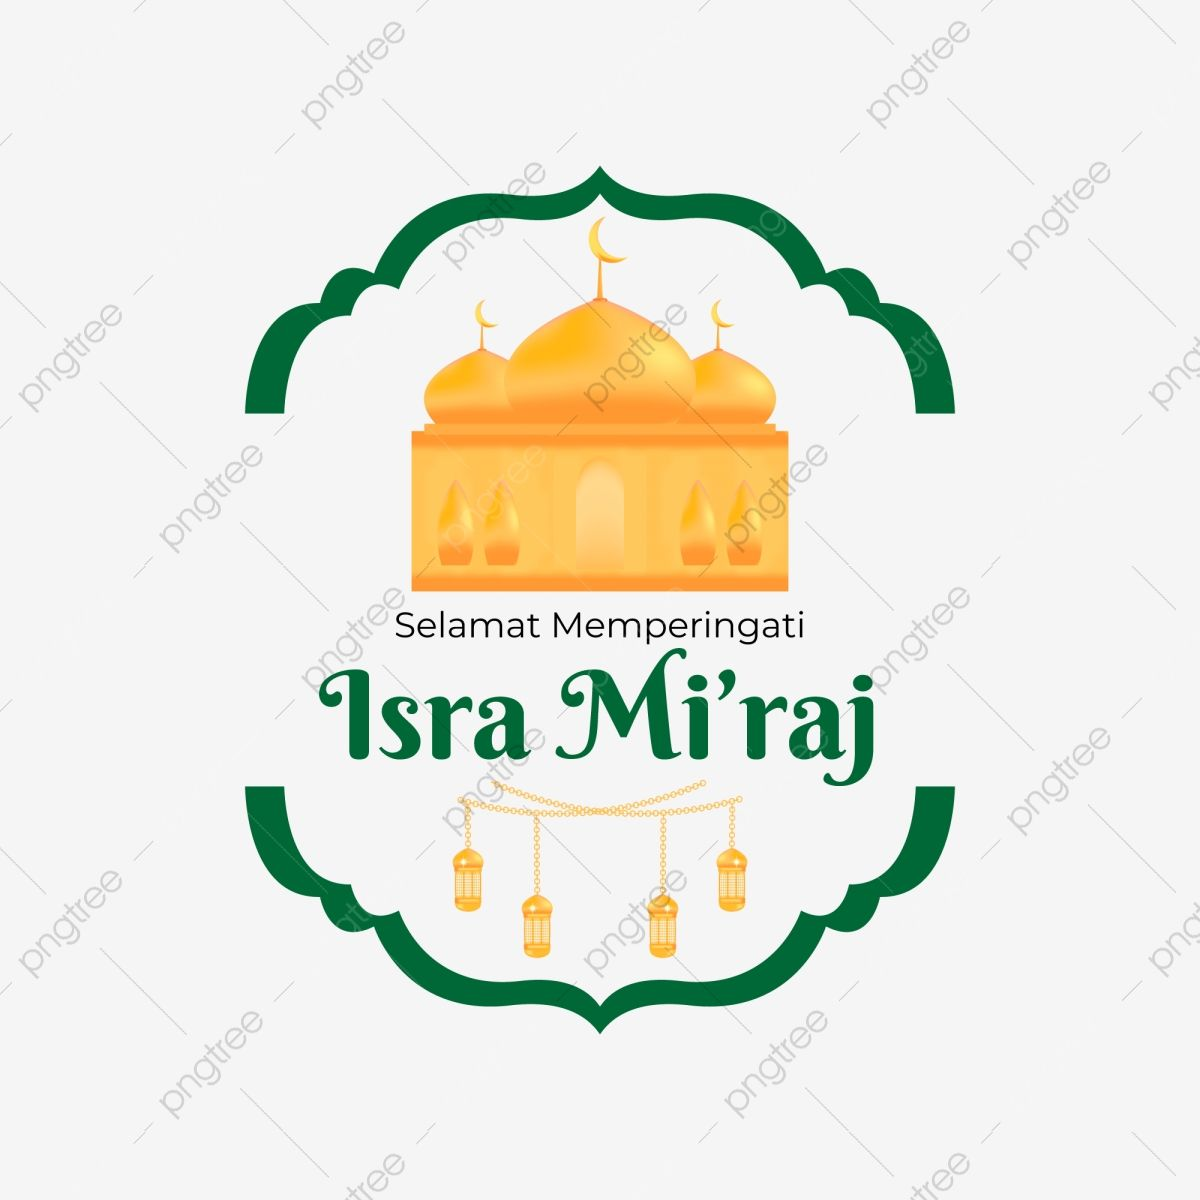 Islamic Celebration With Text Selamat Memperingati Isra Miraj Isra Miraj Isra Mi Raj Png And Vector With Transparent Background For Free Download In 2021 Islamic Celebrations Transparent Background Graphic Resources